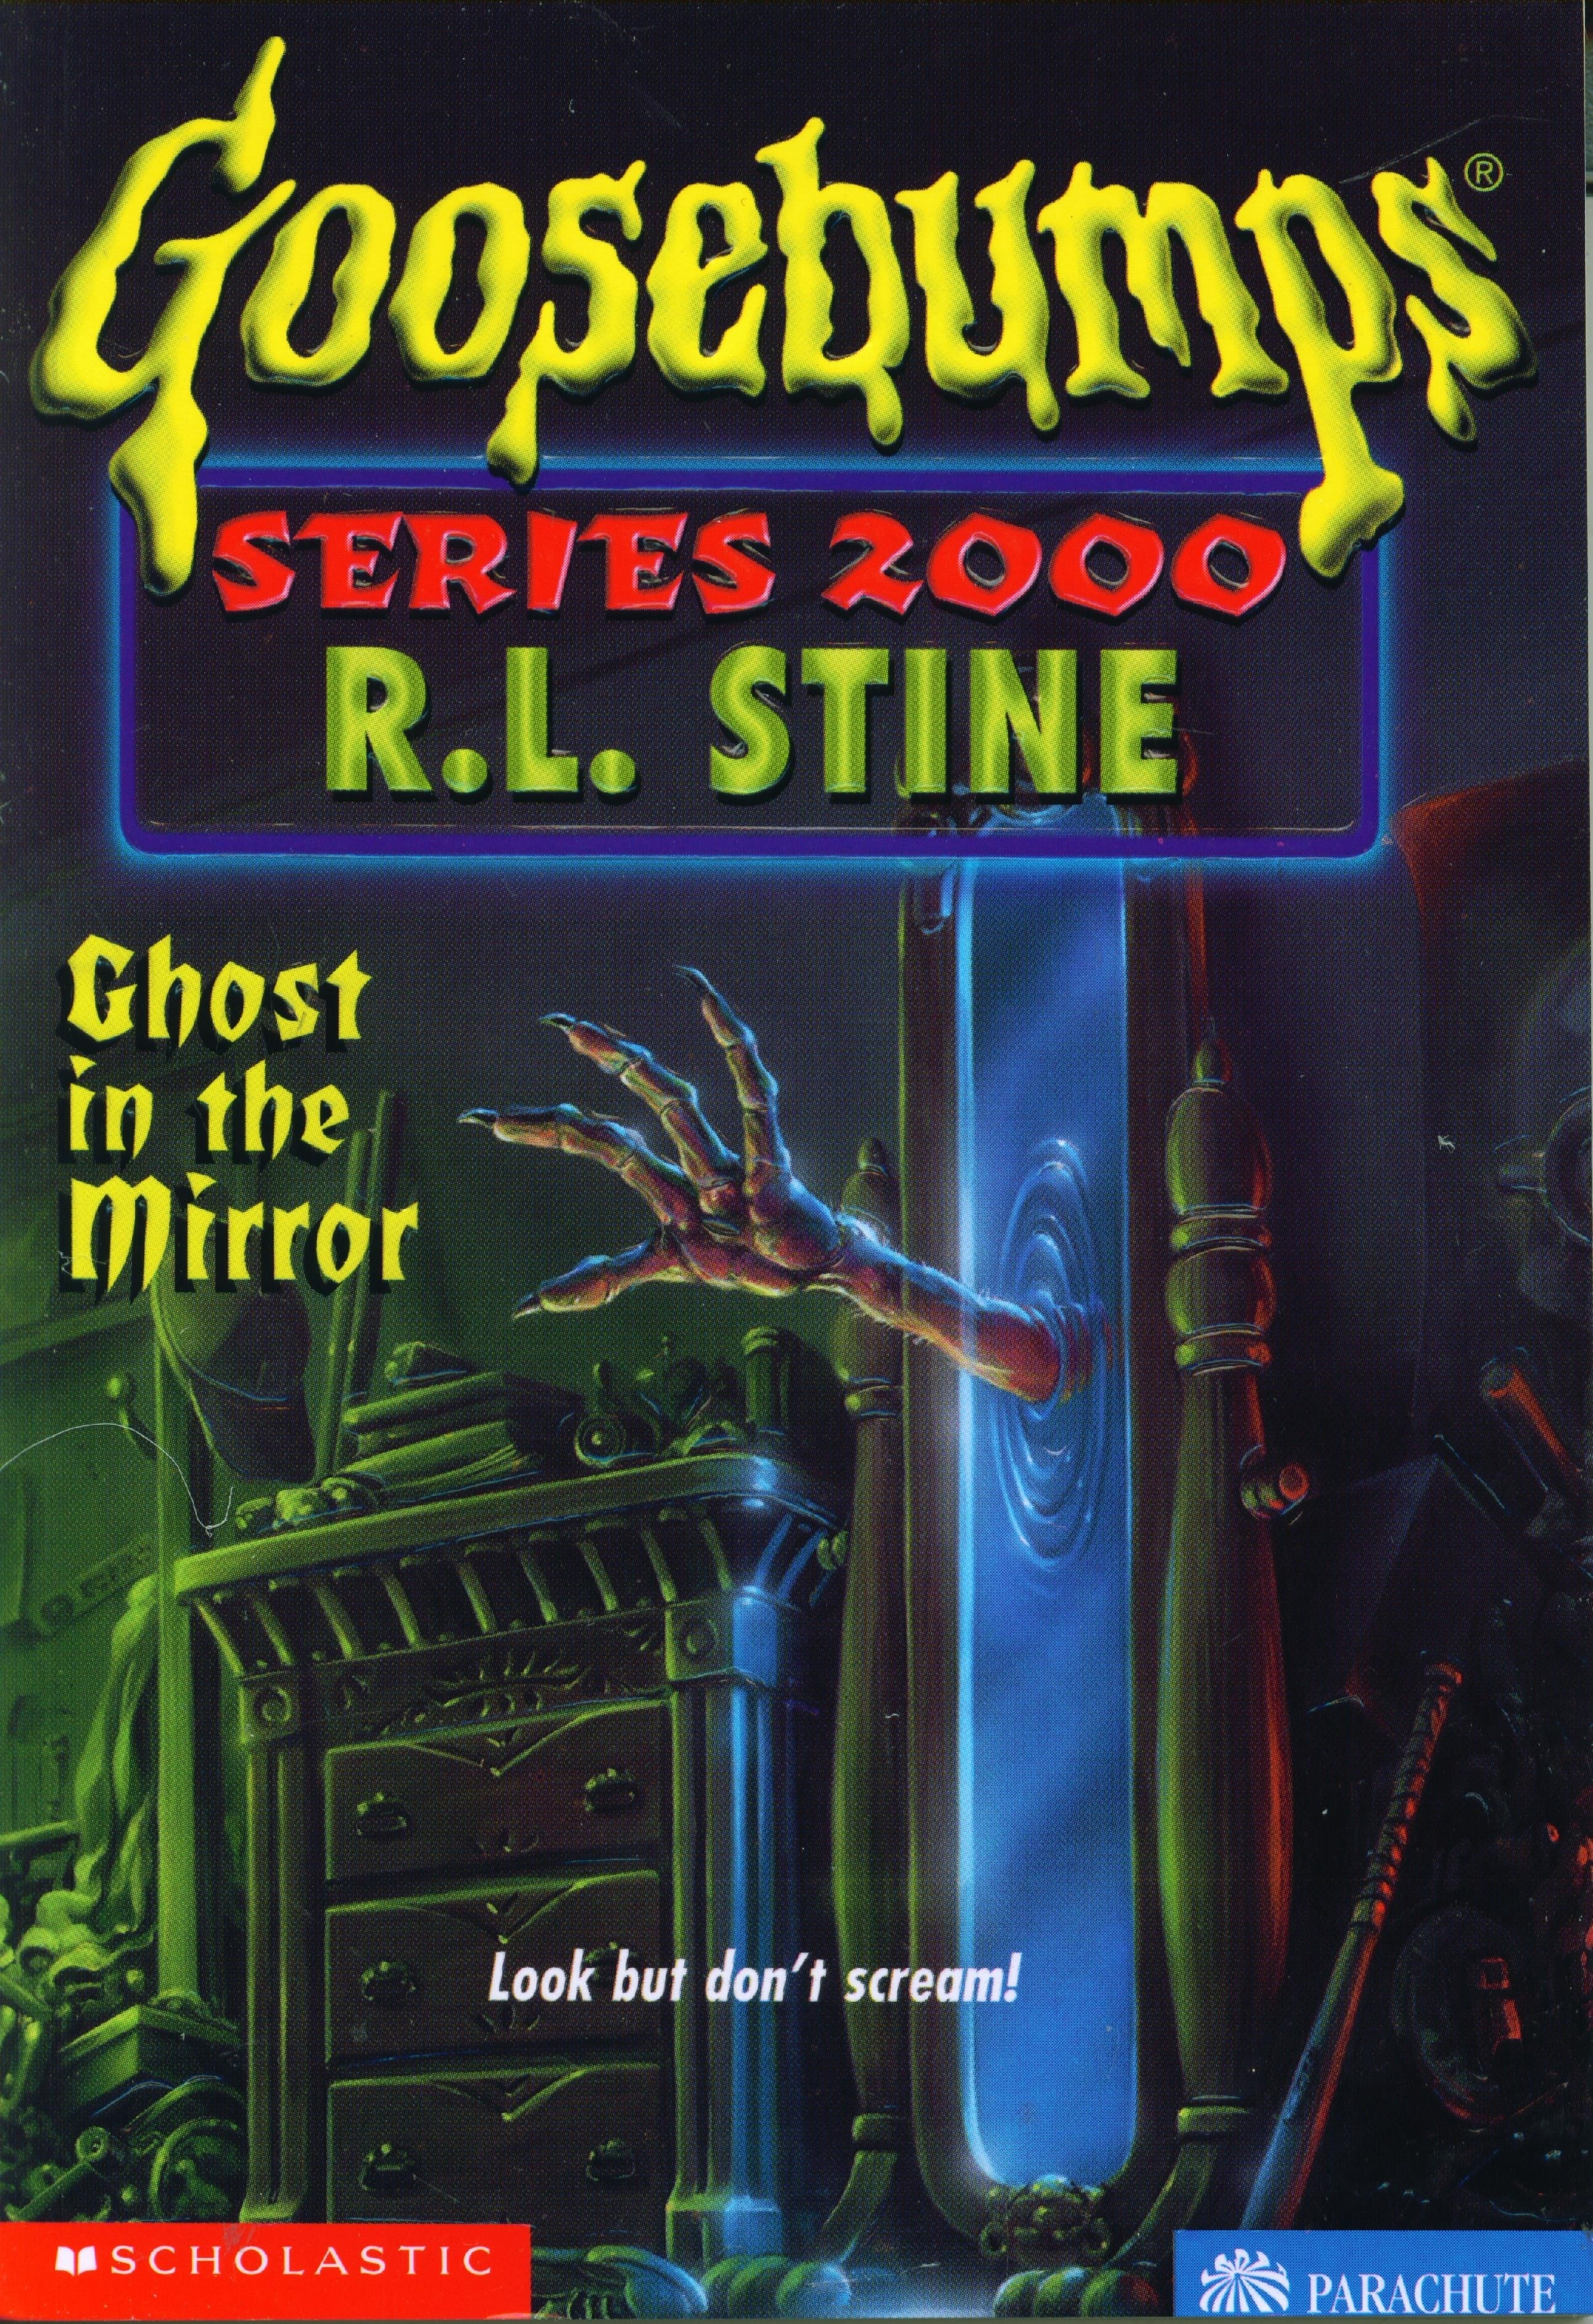 Goosebumps series 2000 ghost in the mirror book 25 for Mirror books